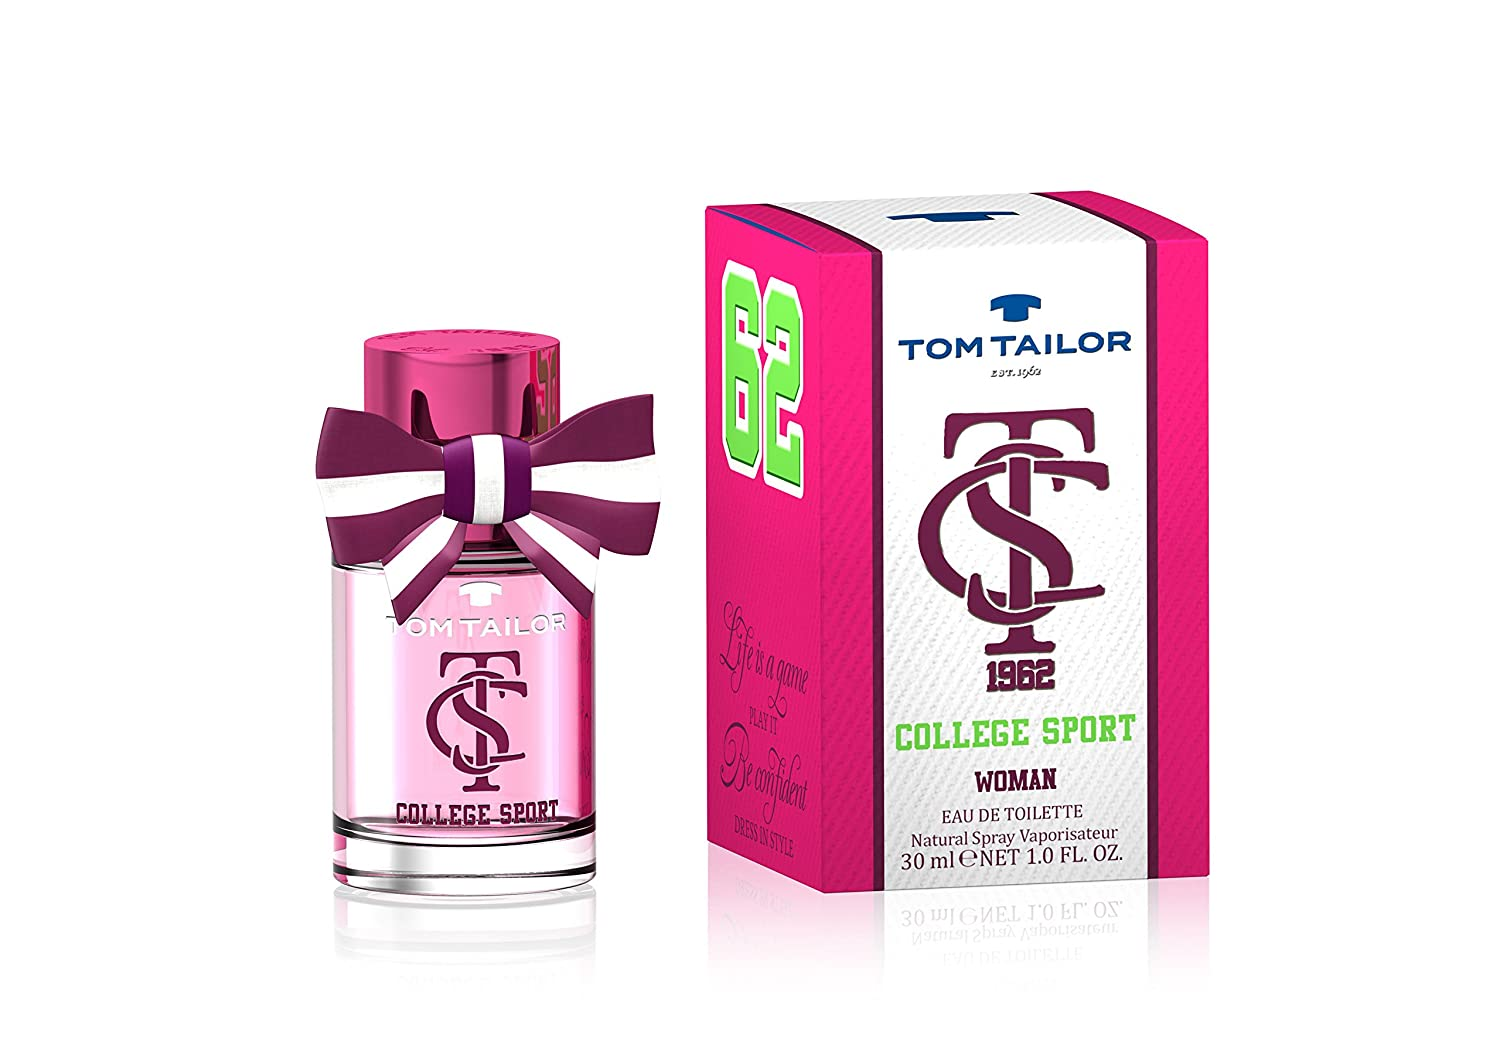 neuesten Stil Schönheit neuartiger Stil TOM TAILOR College Sport for Women EDT 30 ml: Amazon.co.uk ...